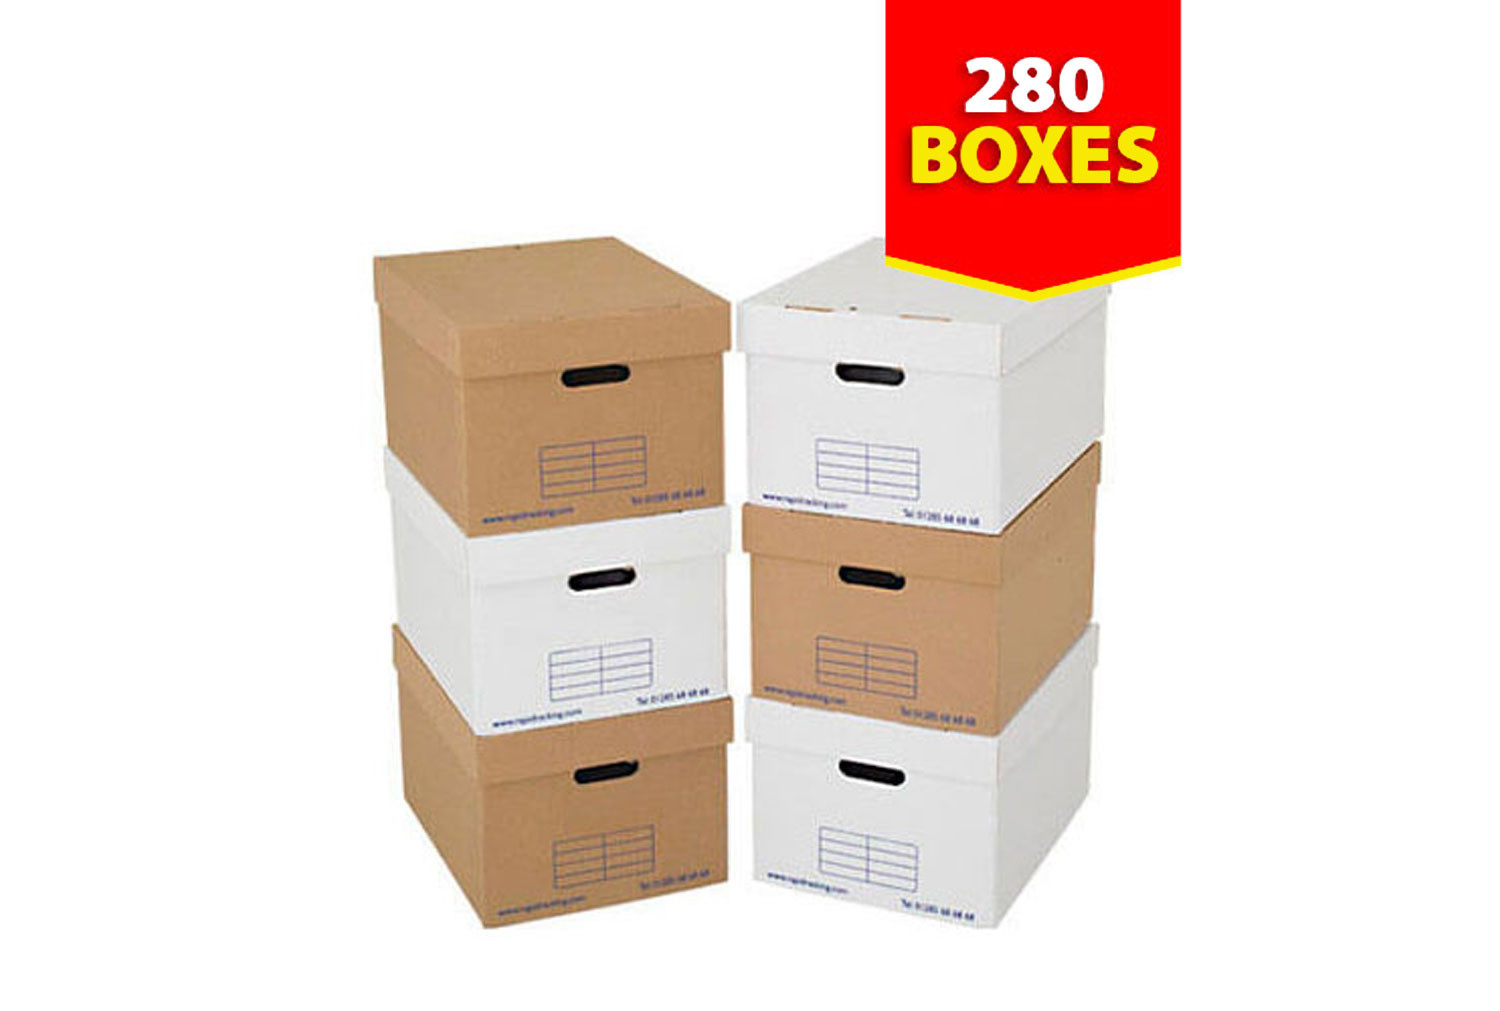 Archive Storage Boxes (280 Pack)